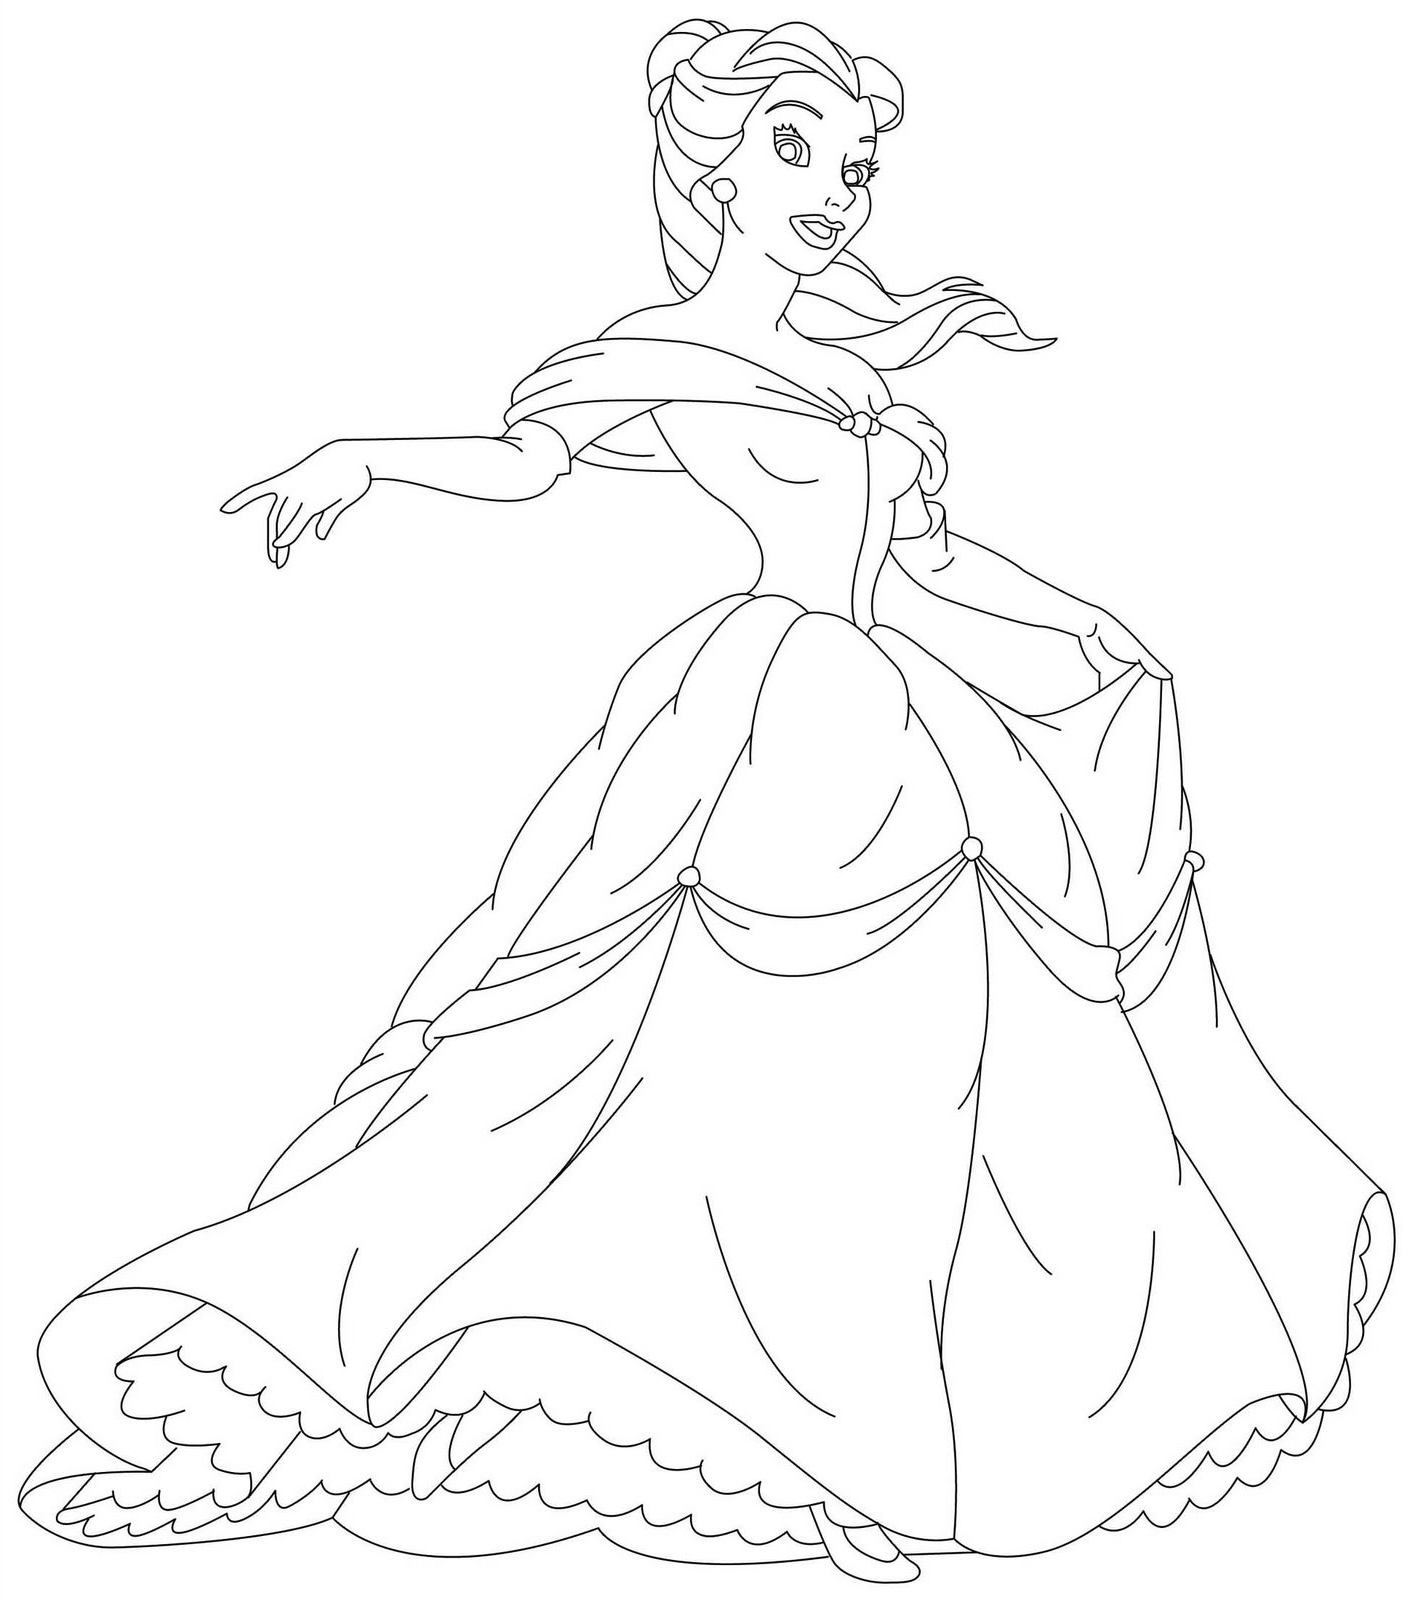 disney princesss coloring pages - photo#15